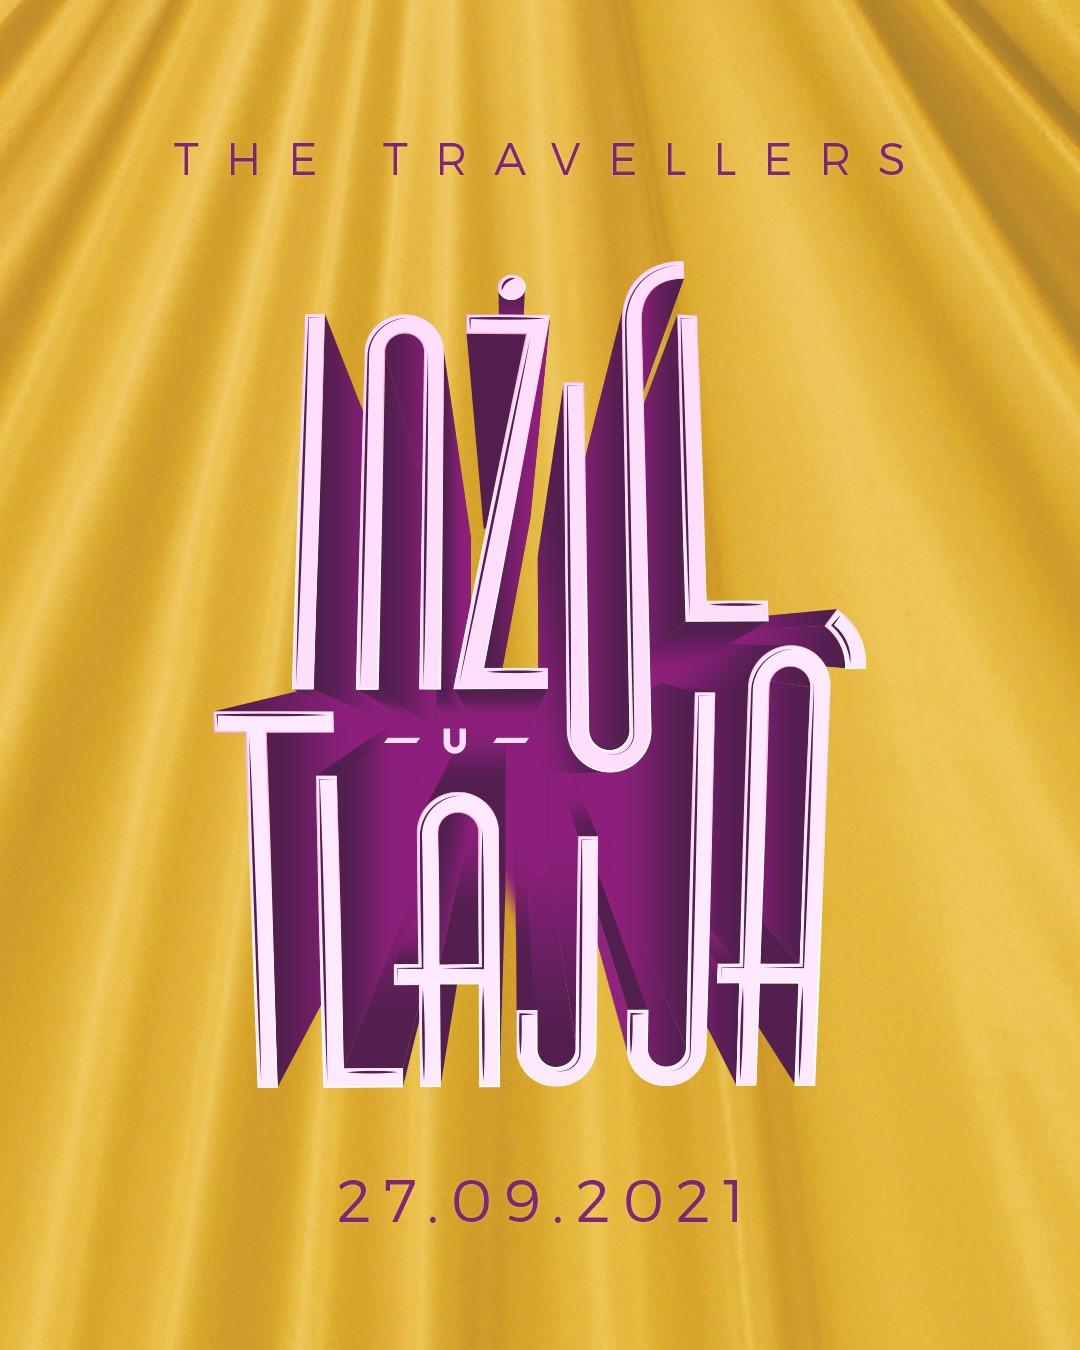 The new release from The Travellers.